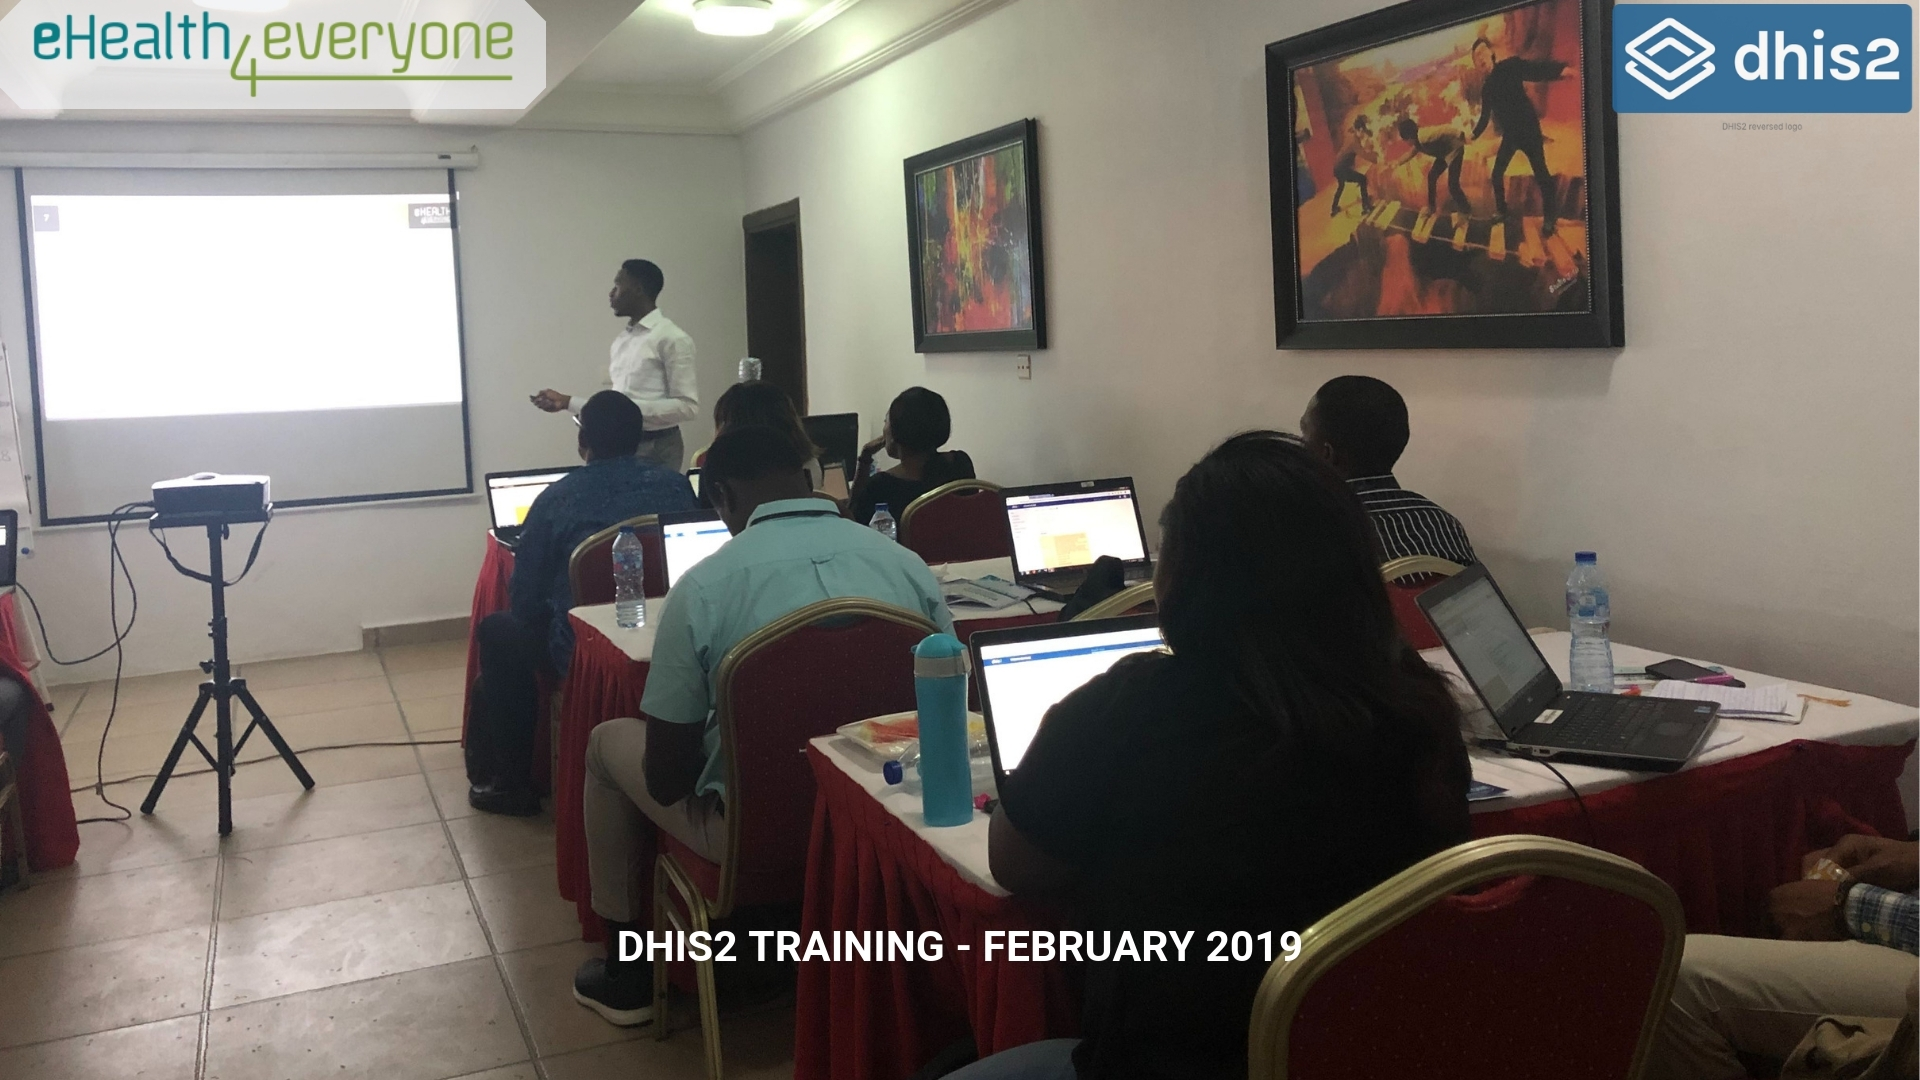 DHIS2 TRAINING – FEBRUARY 2019 – 2 - eHealth4everyone